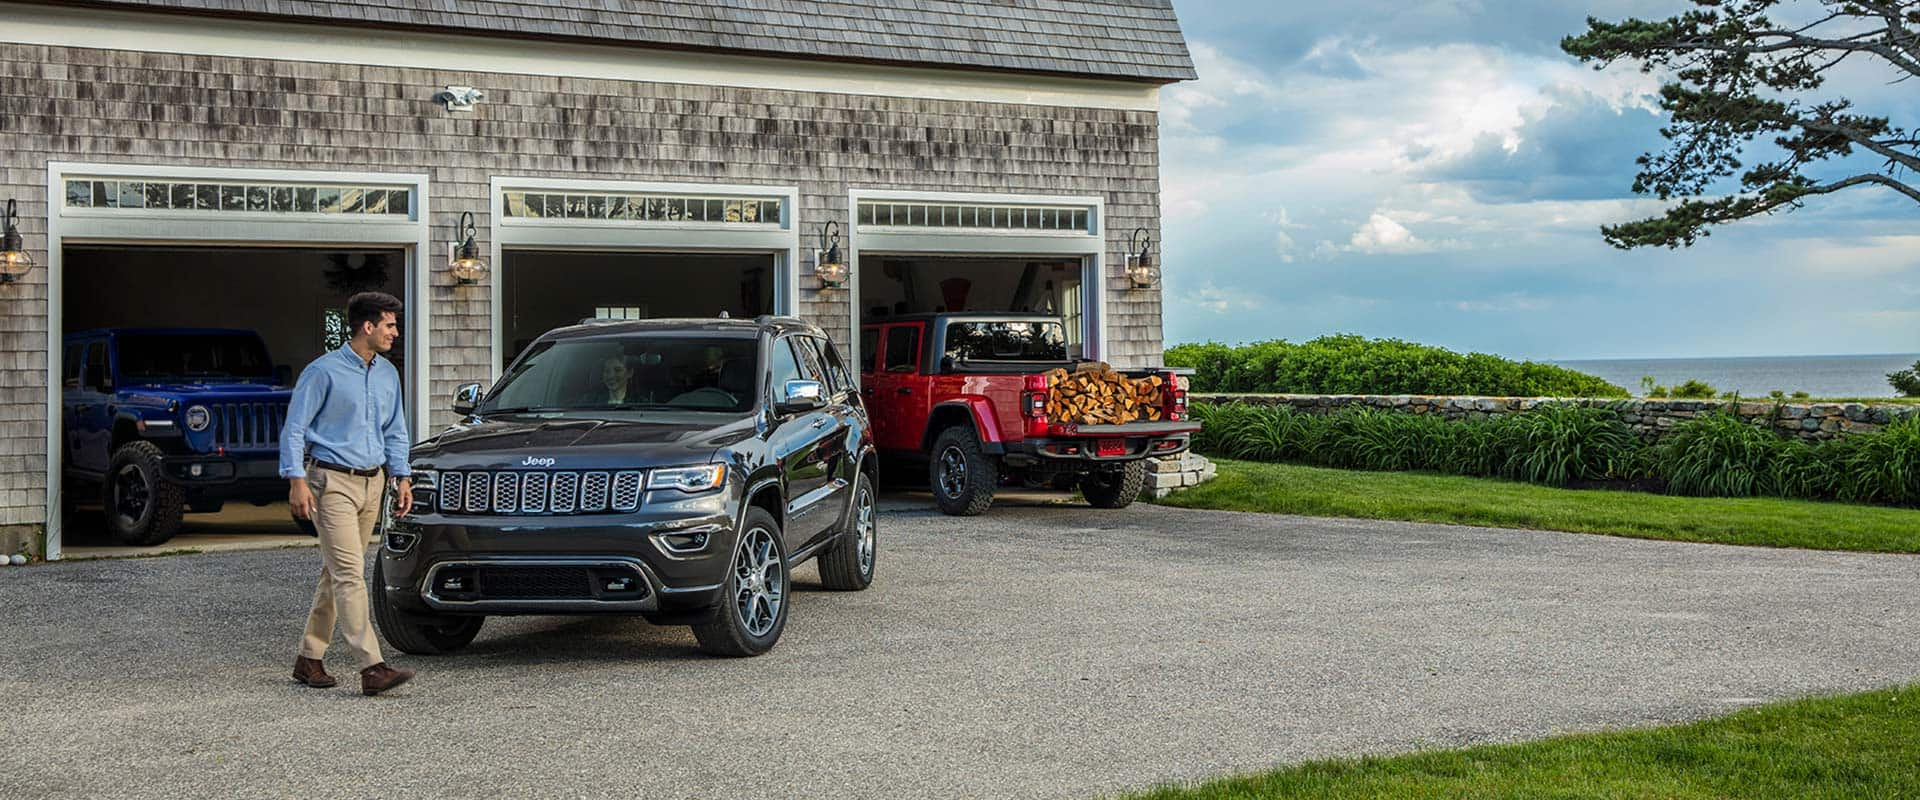 A 2020 Jeep Grand Cherokee parked in front of a garage with a 2020 Jeep Wrangler and a 2020 Jeep Gladiator parked inside.